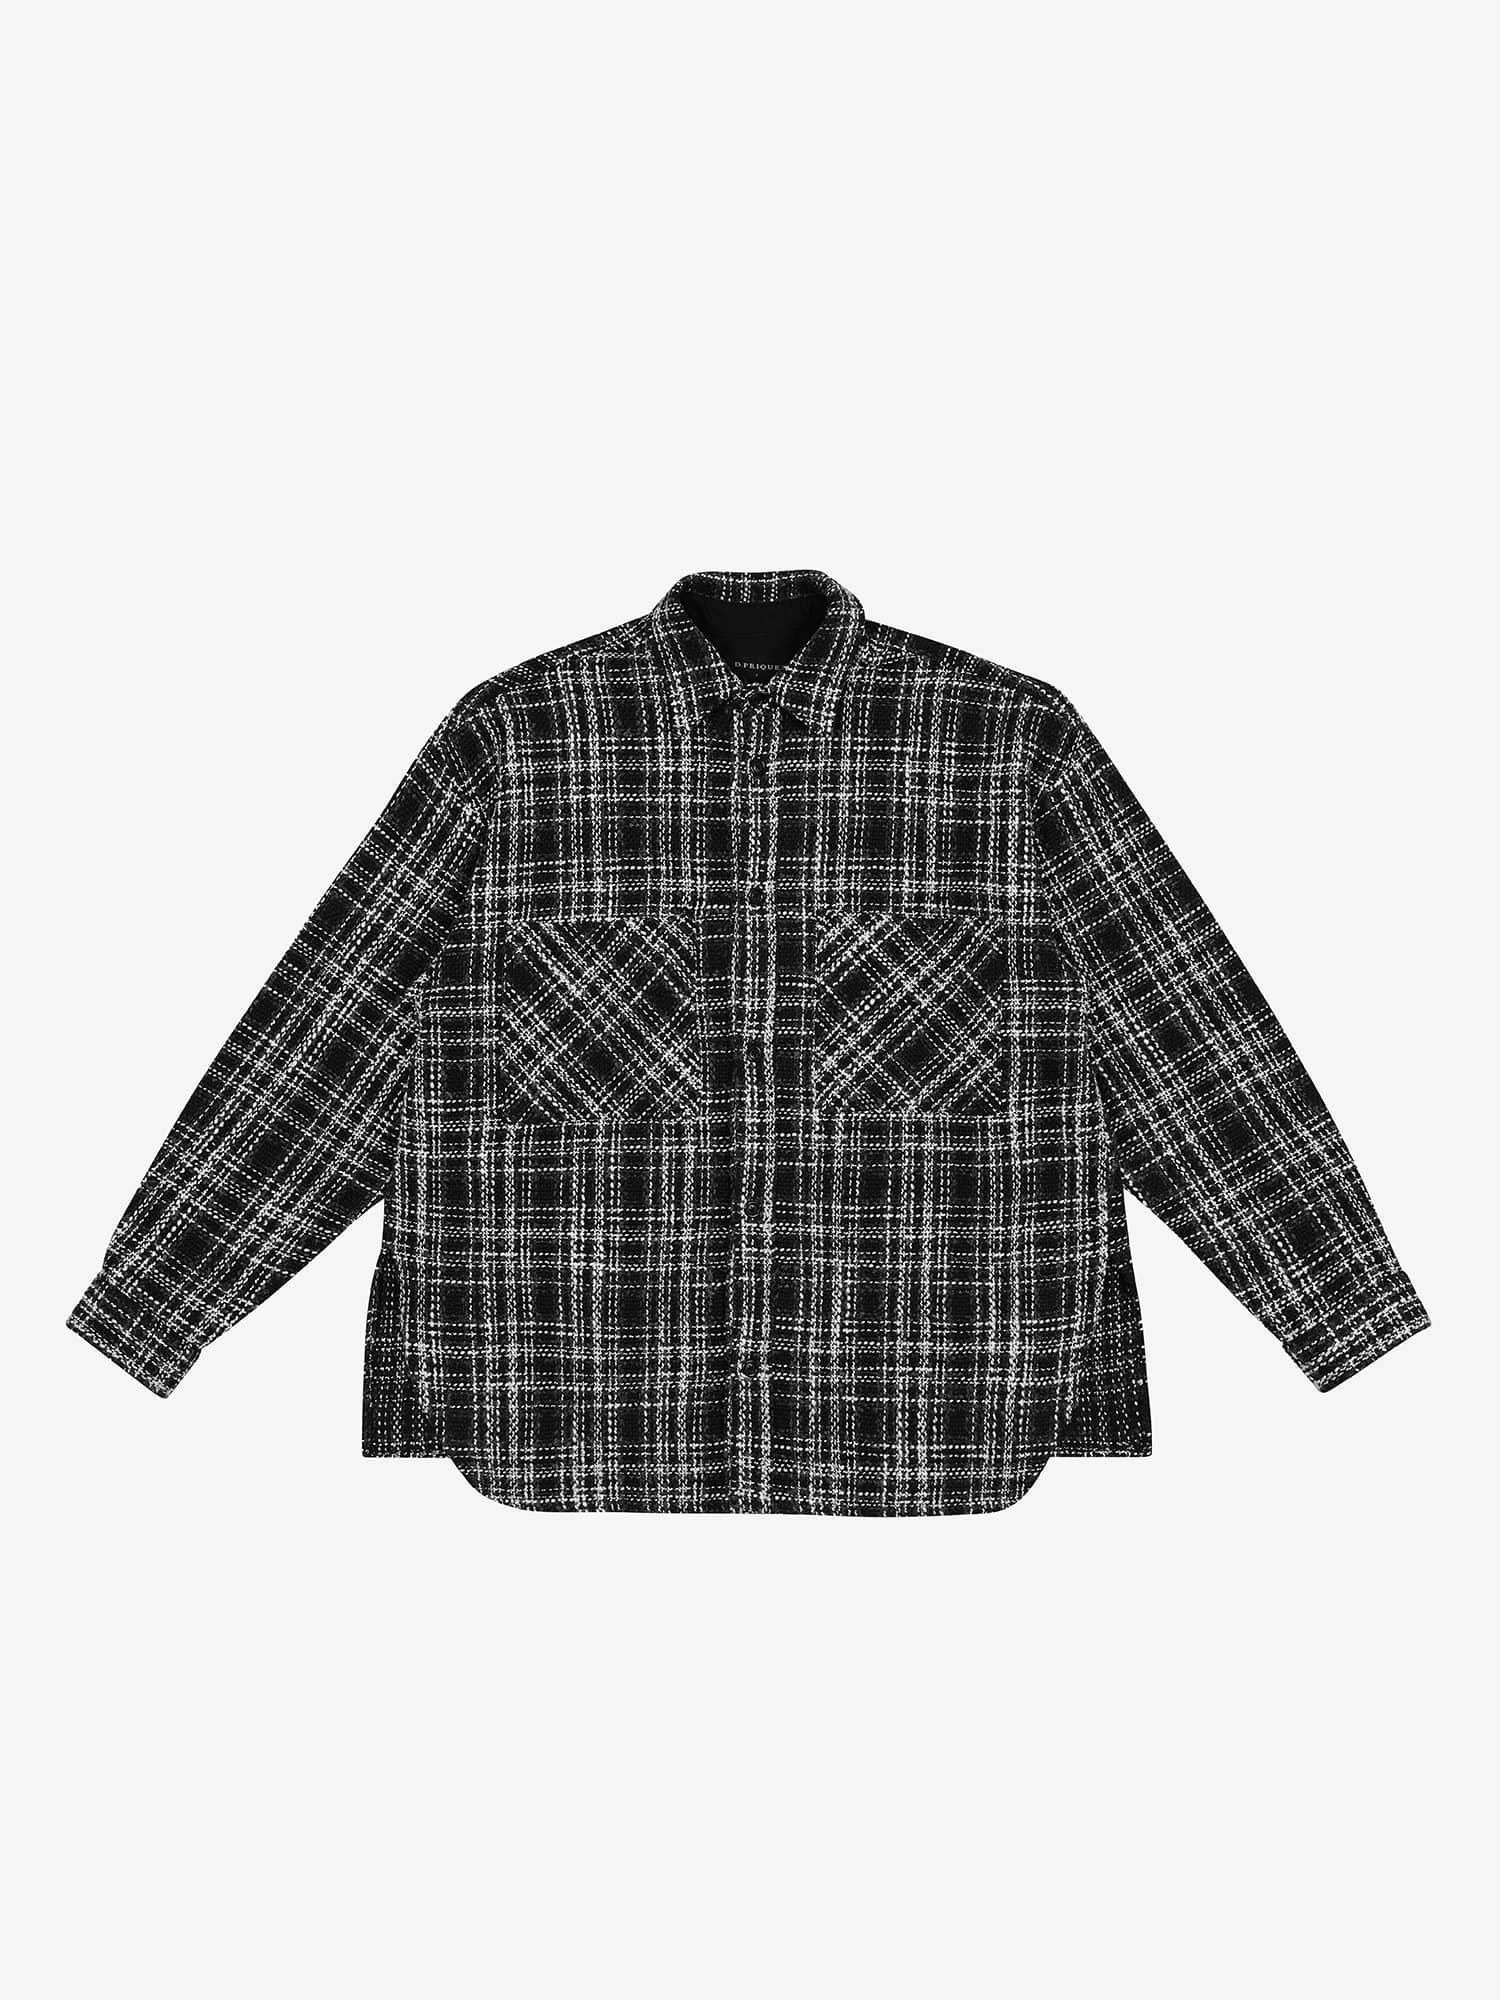 OVERSHIRT JACKET - Tweed Black